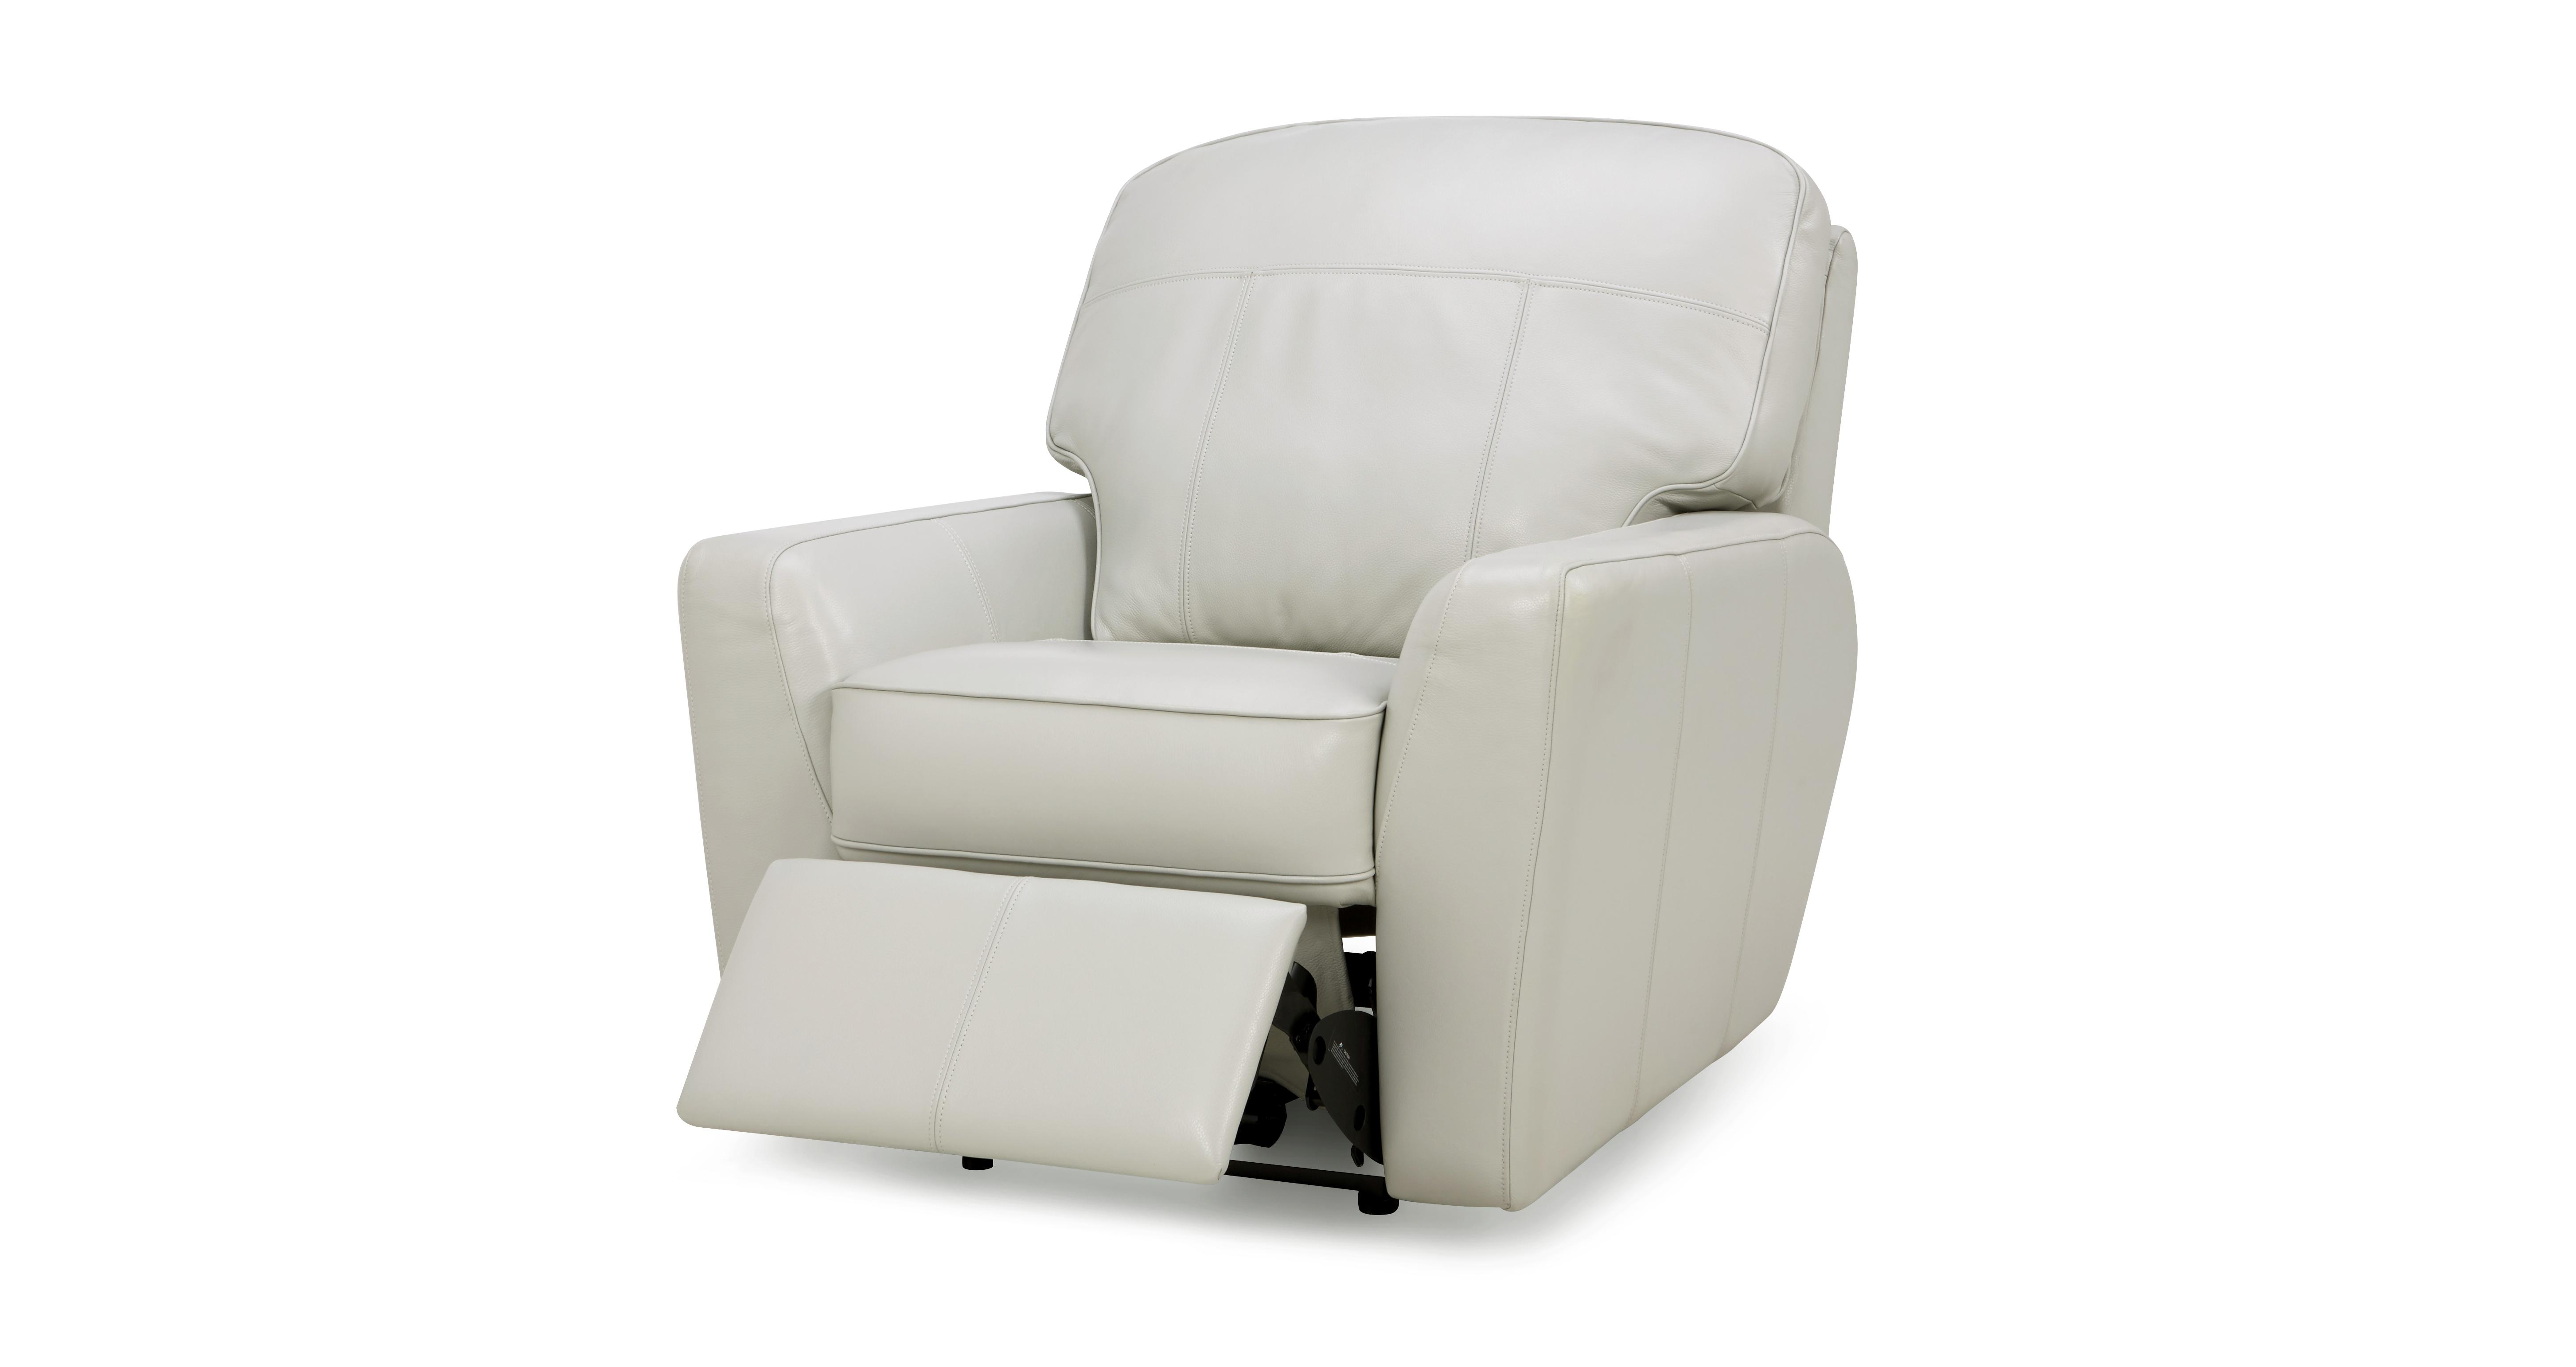 Sophia Leather Electric Recliner Chair | DFS